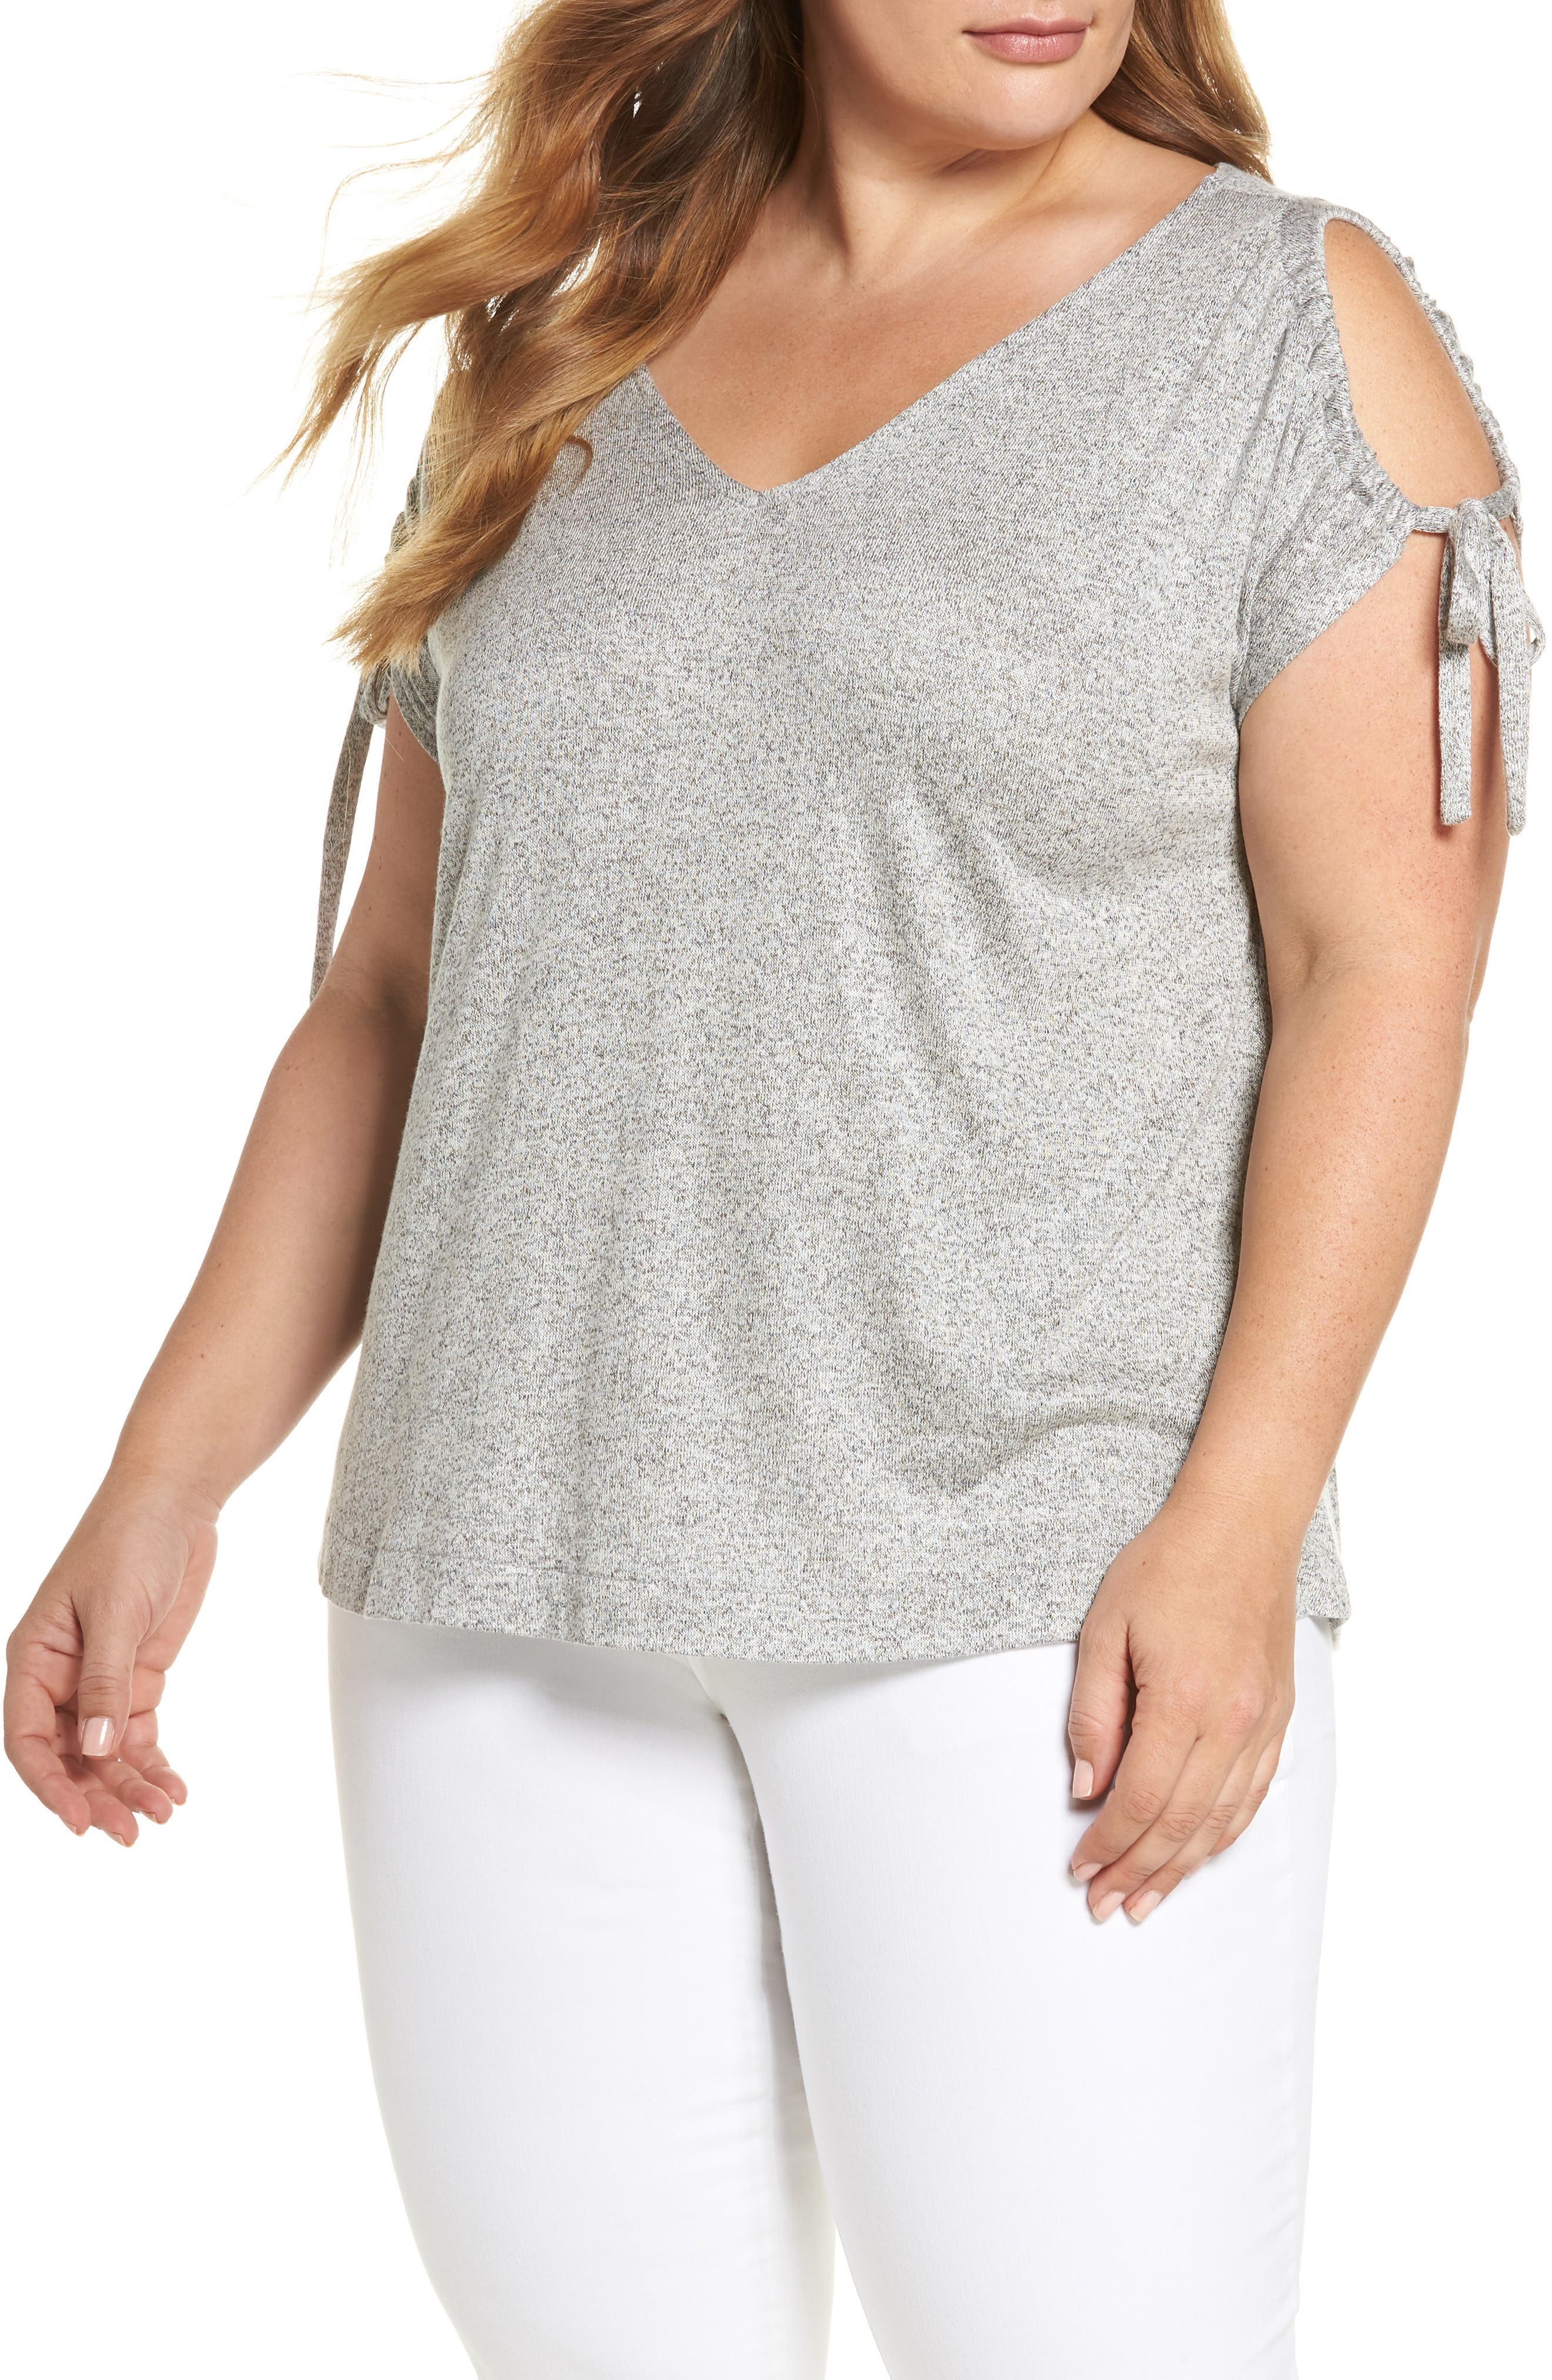 Alternate Image 1 Selected - Lucky Brand Tie Shoulder Top (Plus Size)